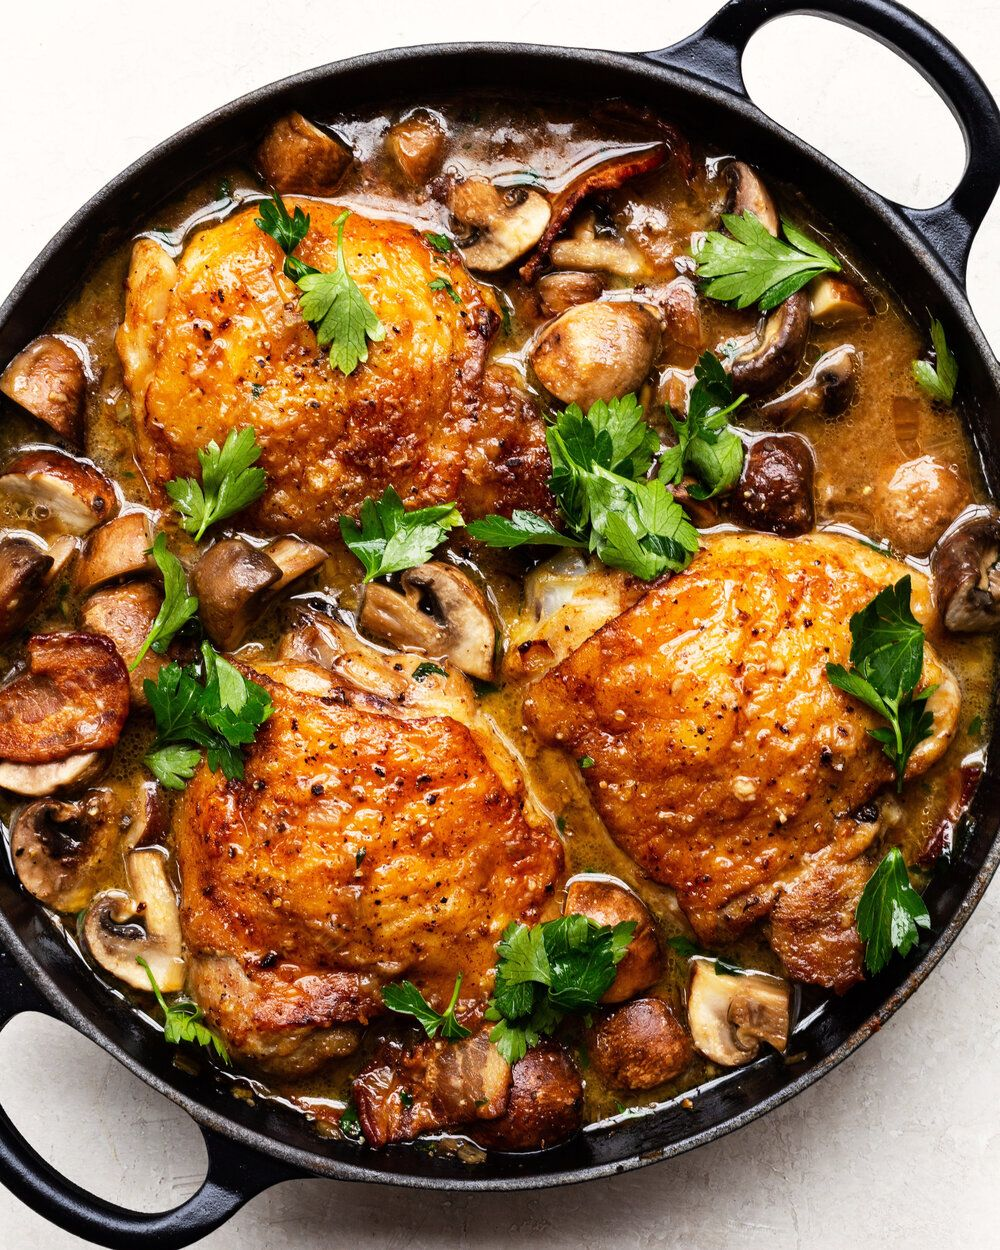 Braised Chicken With Mushrooms, Bacon And Herbs